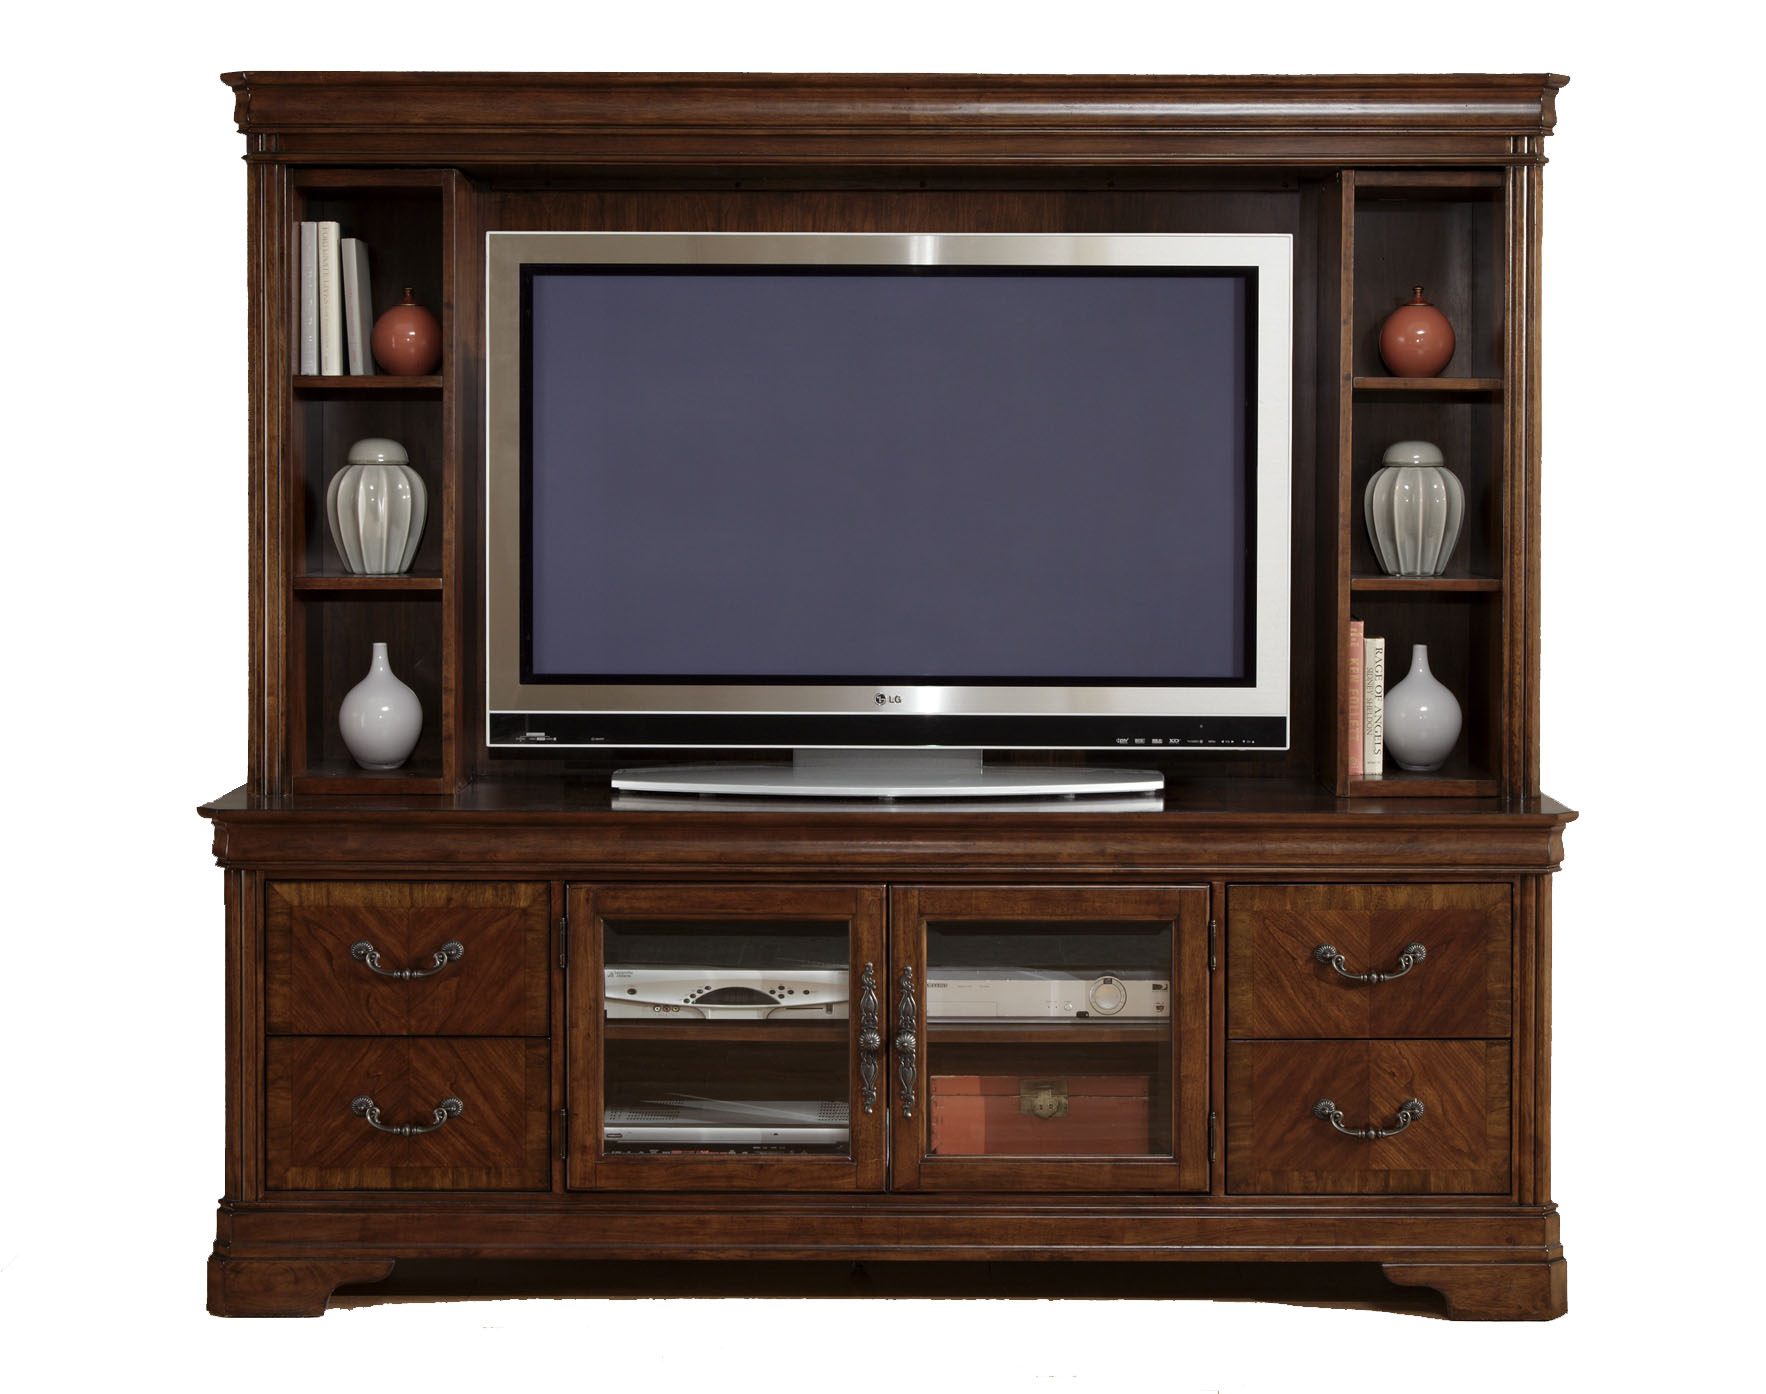 Traditional Brown TV Entertainment Center eBay : fullview1exp from www.ebay.com size 1766 x 1394 jpeg 260kB